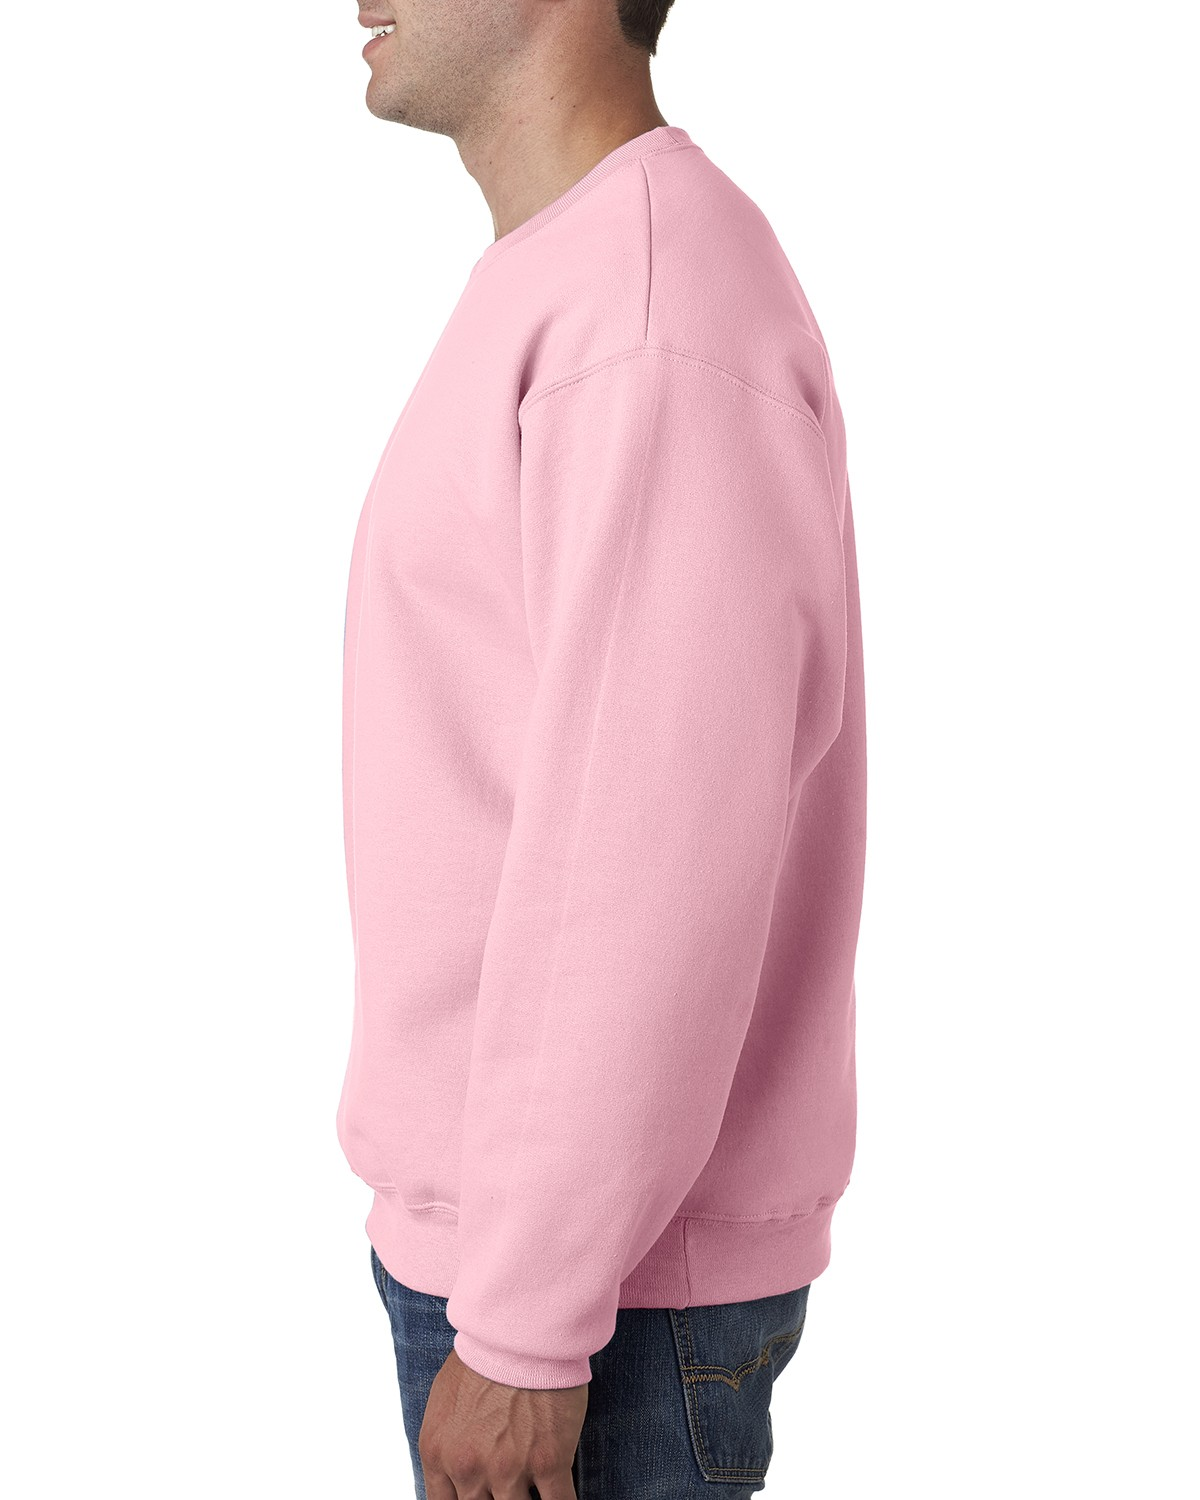 4662 Jerzees CLASSIC PINK